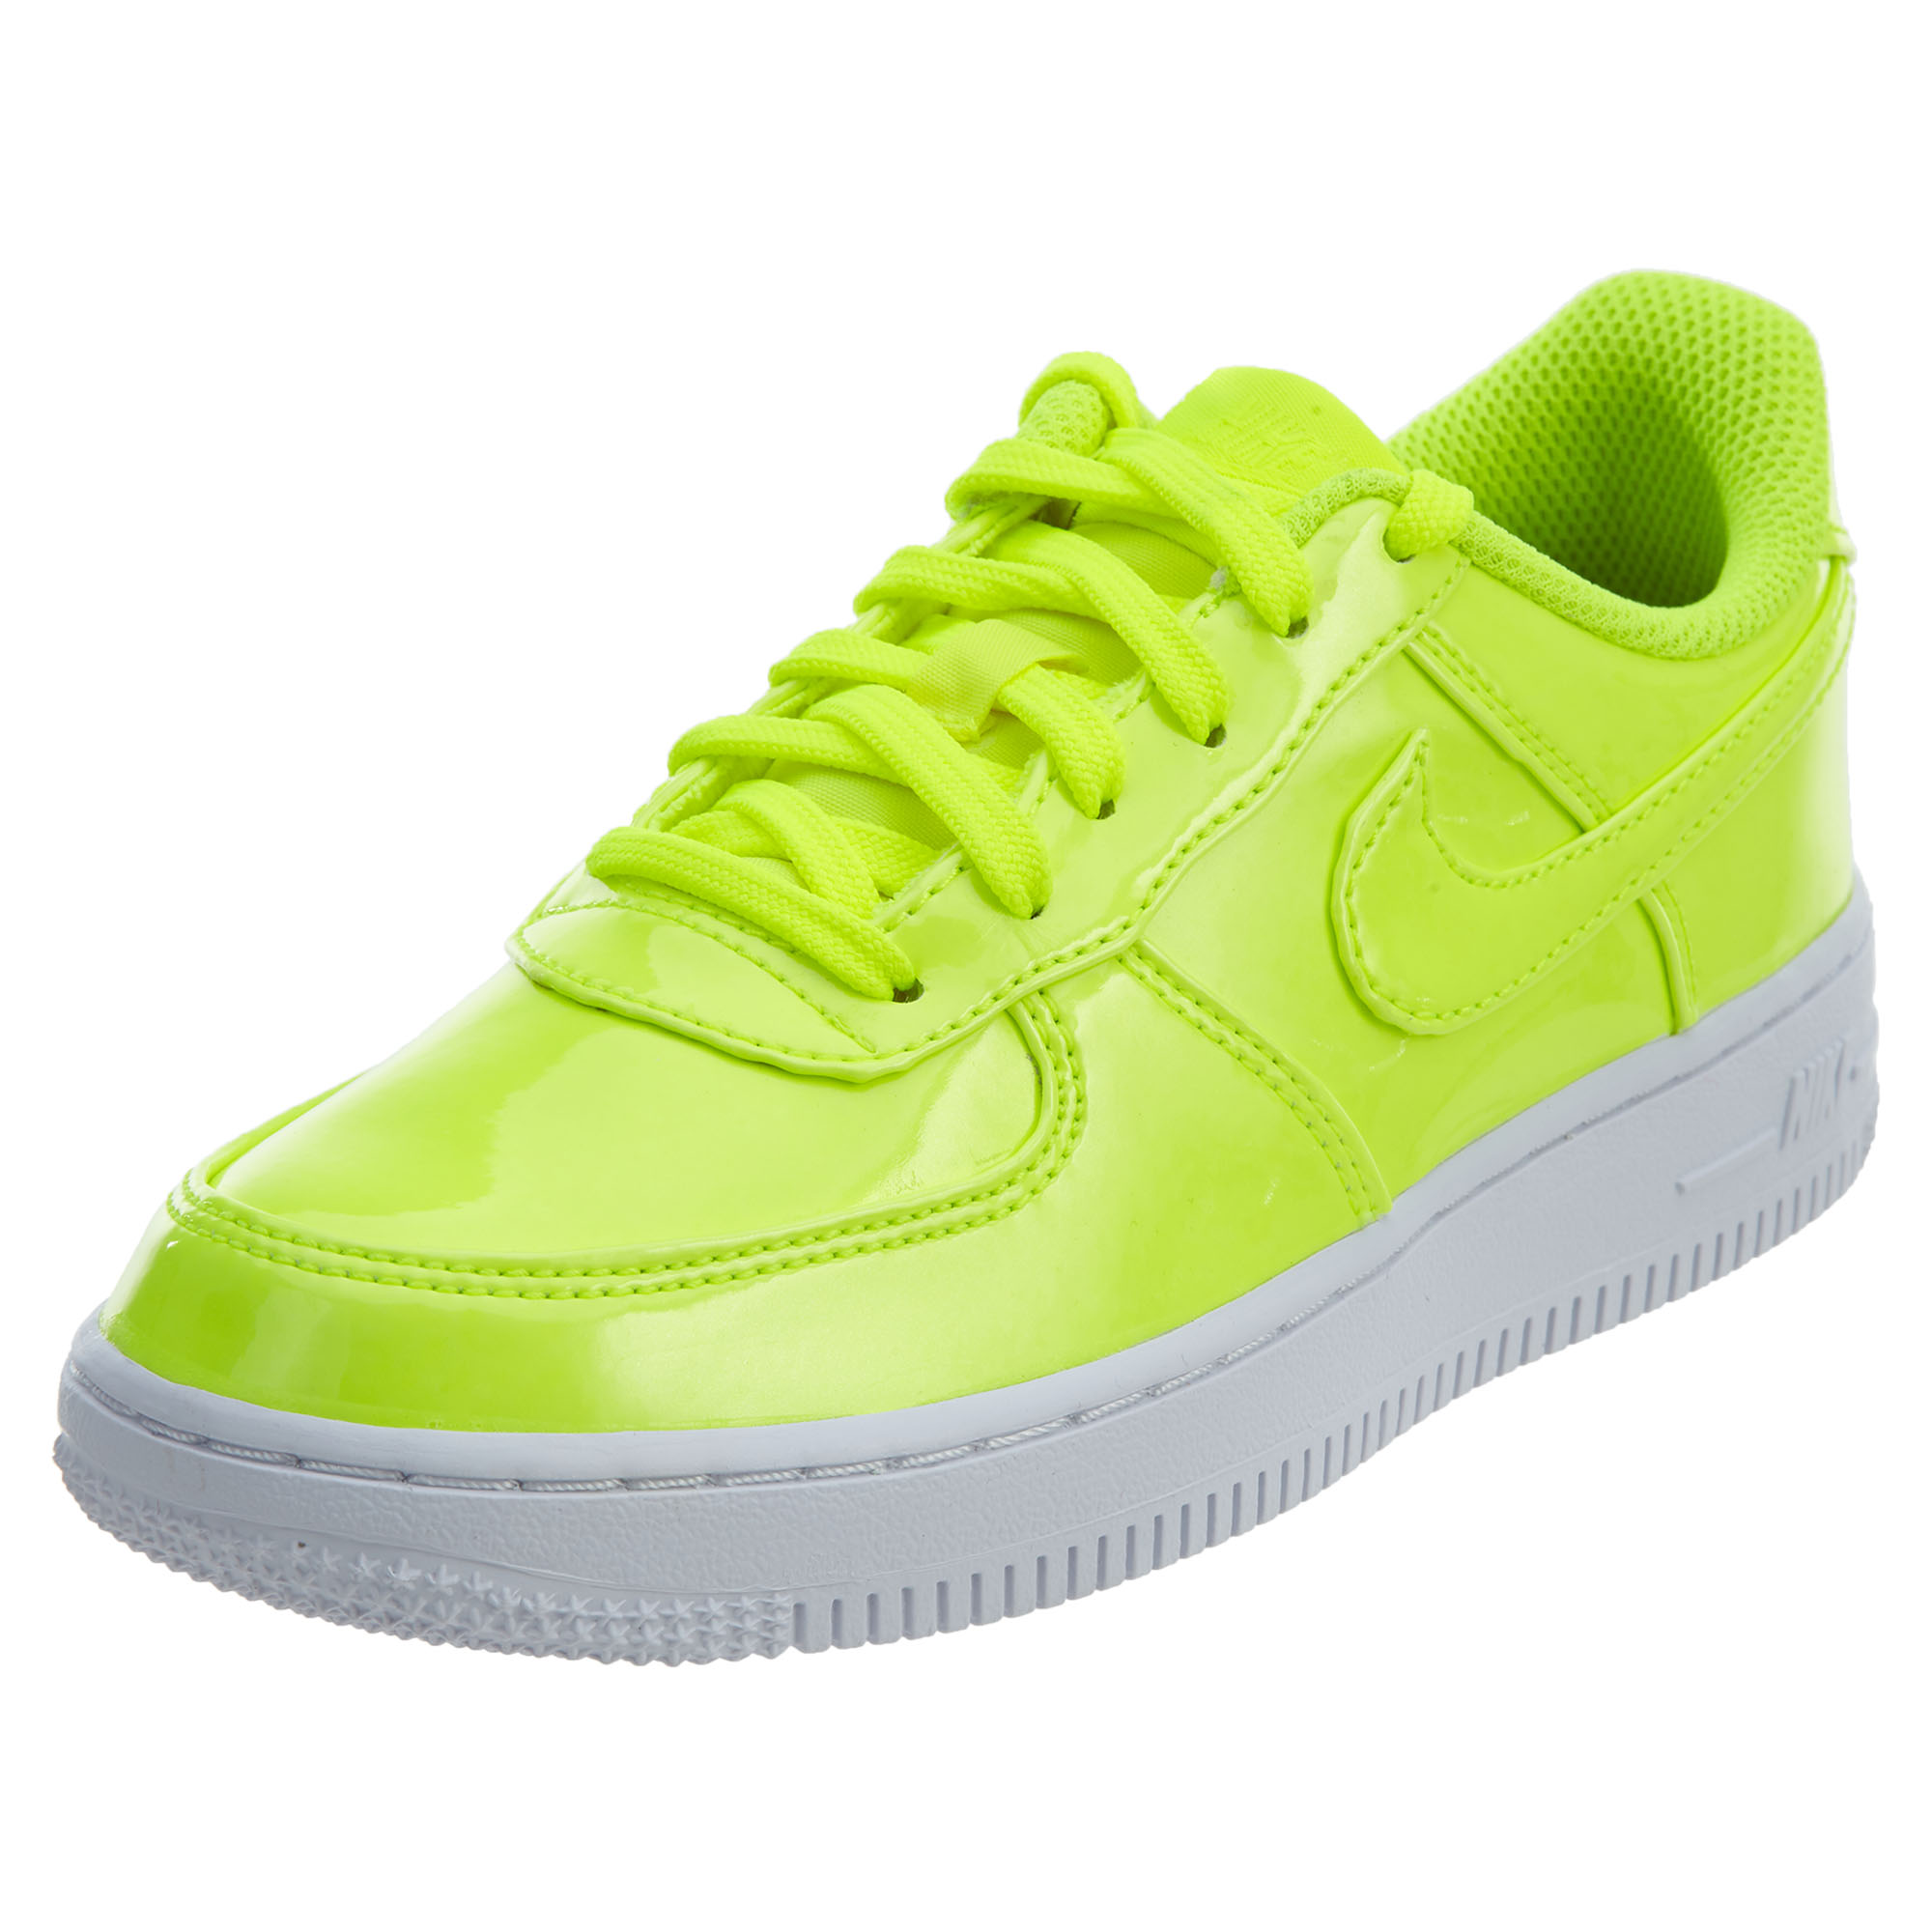 bca28ab581b Details about Nike Little Kids Force 1 LV8 UV Basketball Shoes AO2287-700